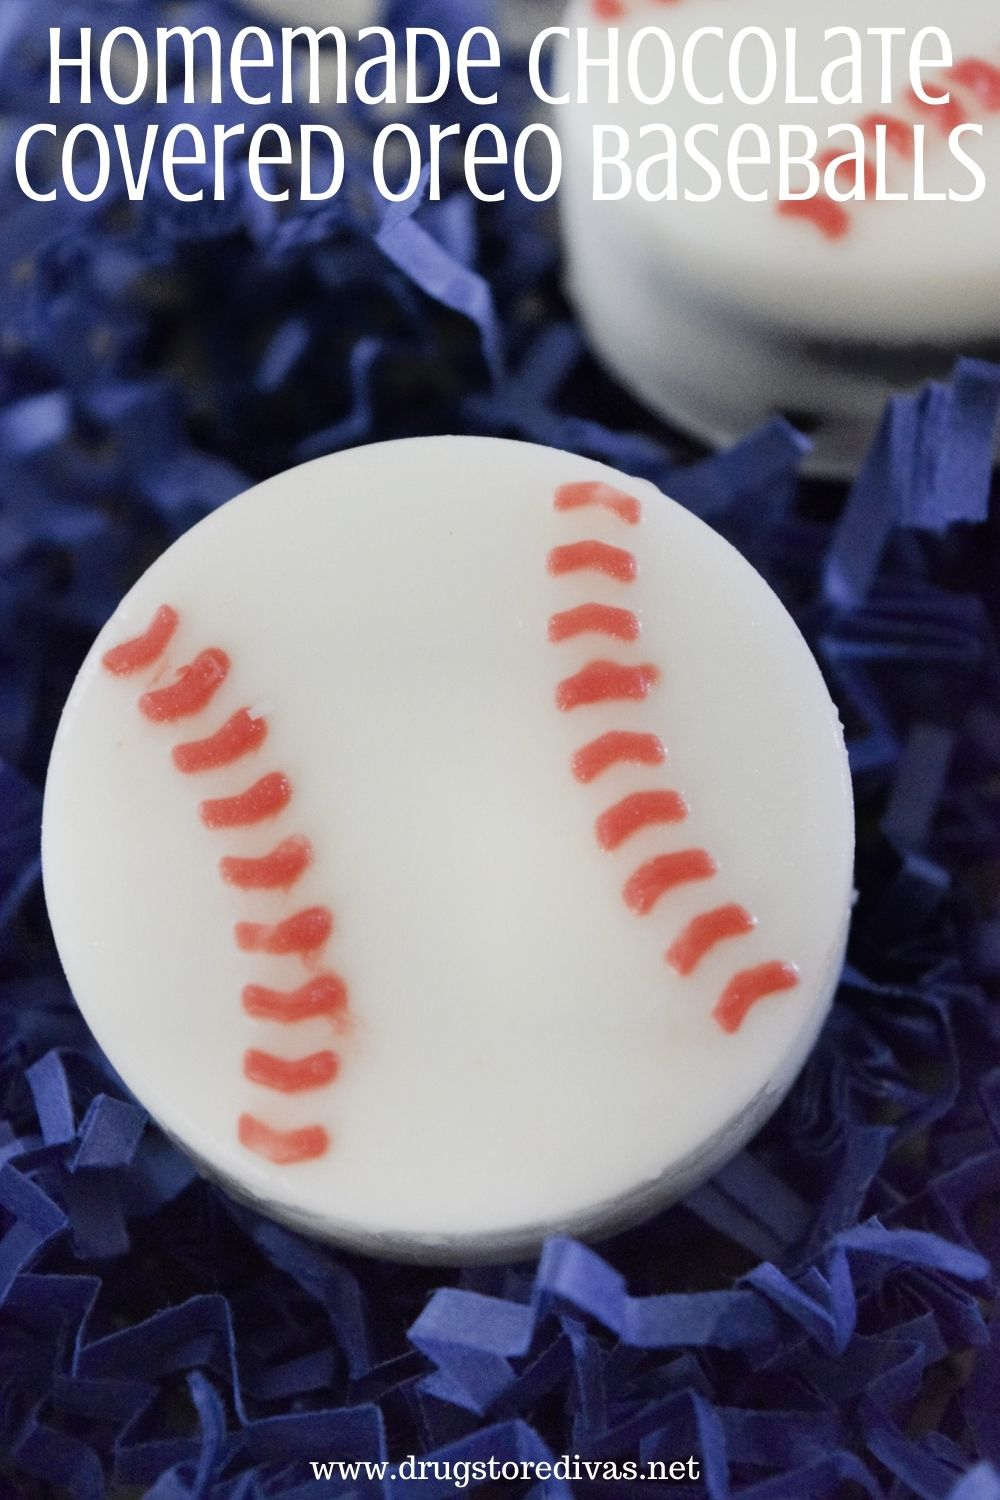 Homemade Chocolate Covered Oreo Baseballs are easier to make than you think. They're perfect for baseball games, gifts for dad, and more.